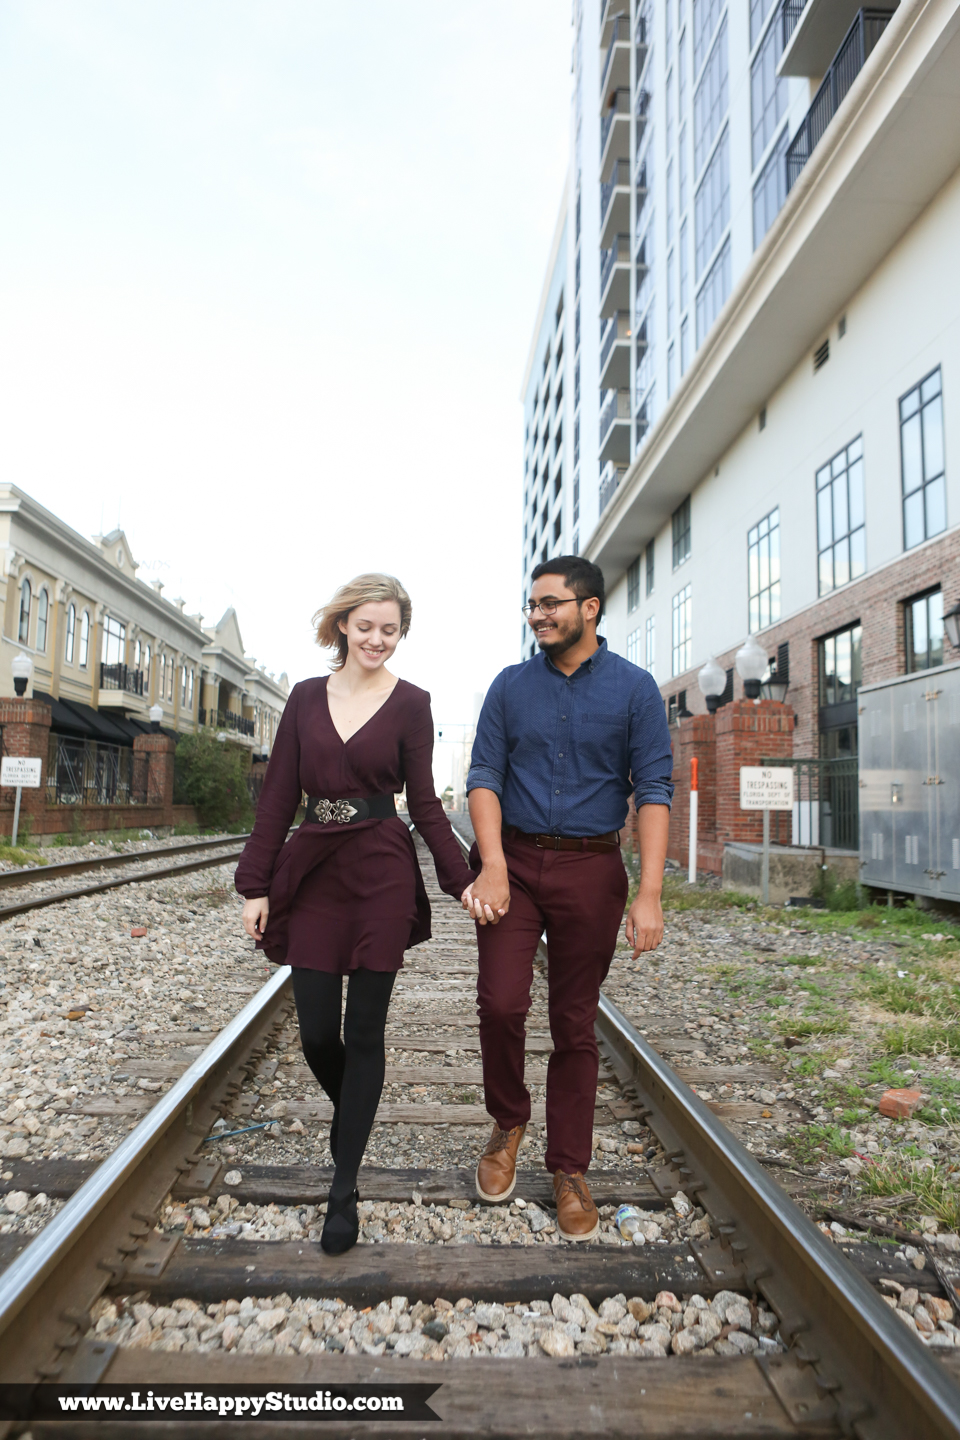 www.livehappystudio.com-church-street-engagement-session-photographer-orlando-central-florida-wedding-photographer-railroad-tracks-8.jpg